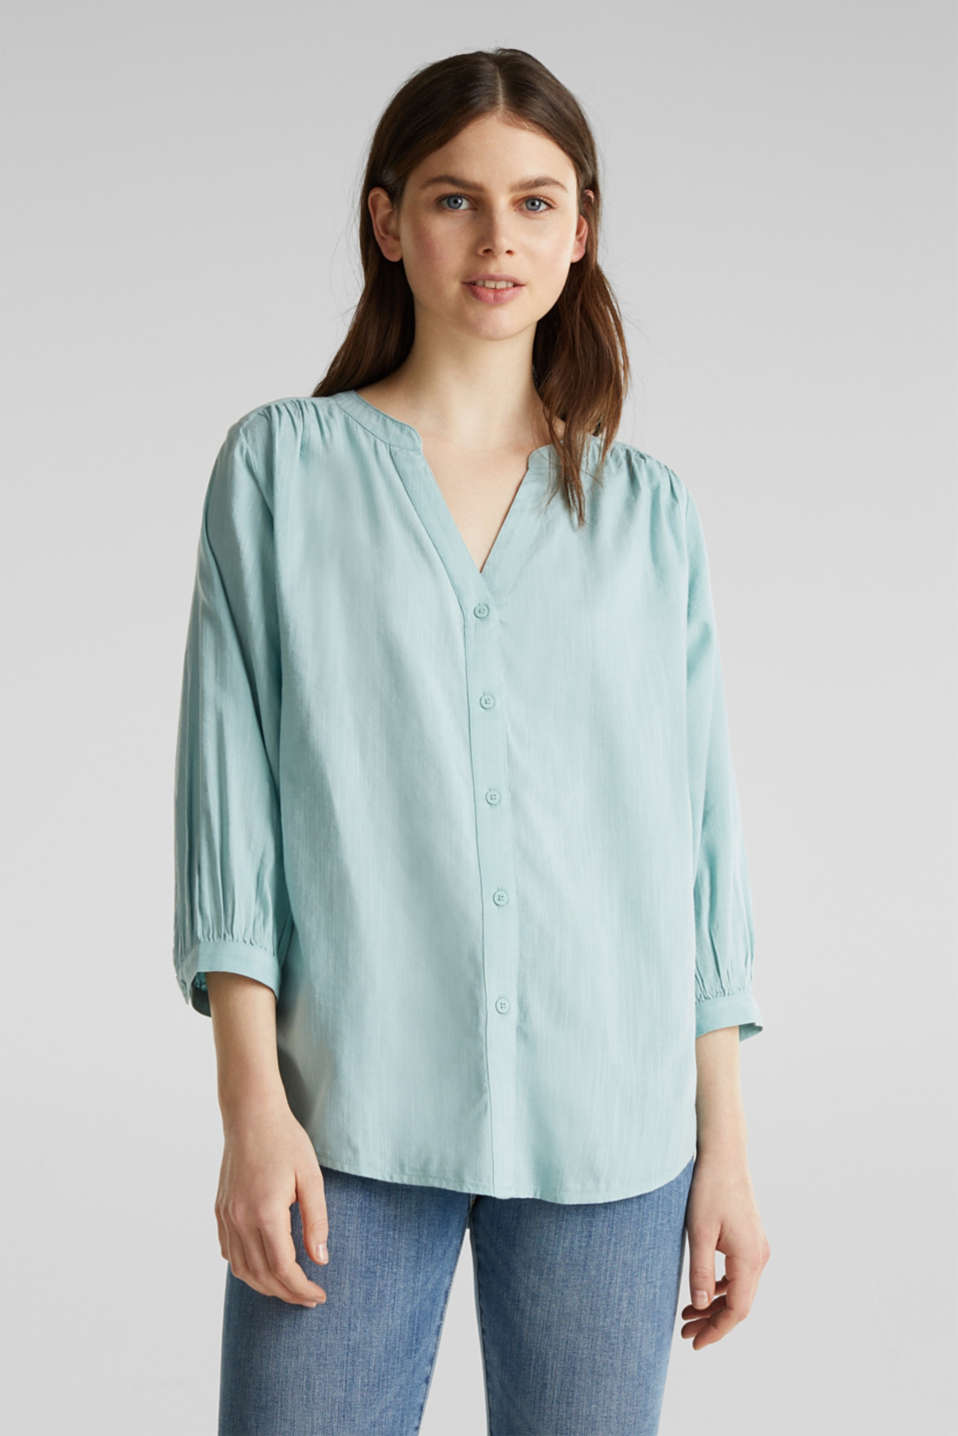 Textured blouse with batwing sleeves, LIGHT AQUA GREEN, detail image number 5